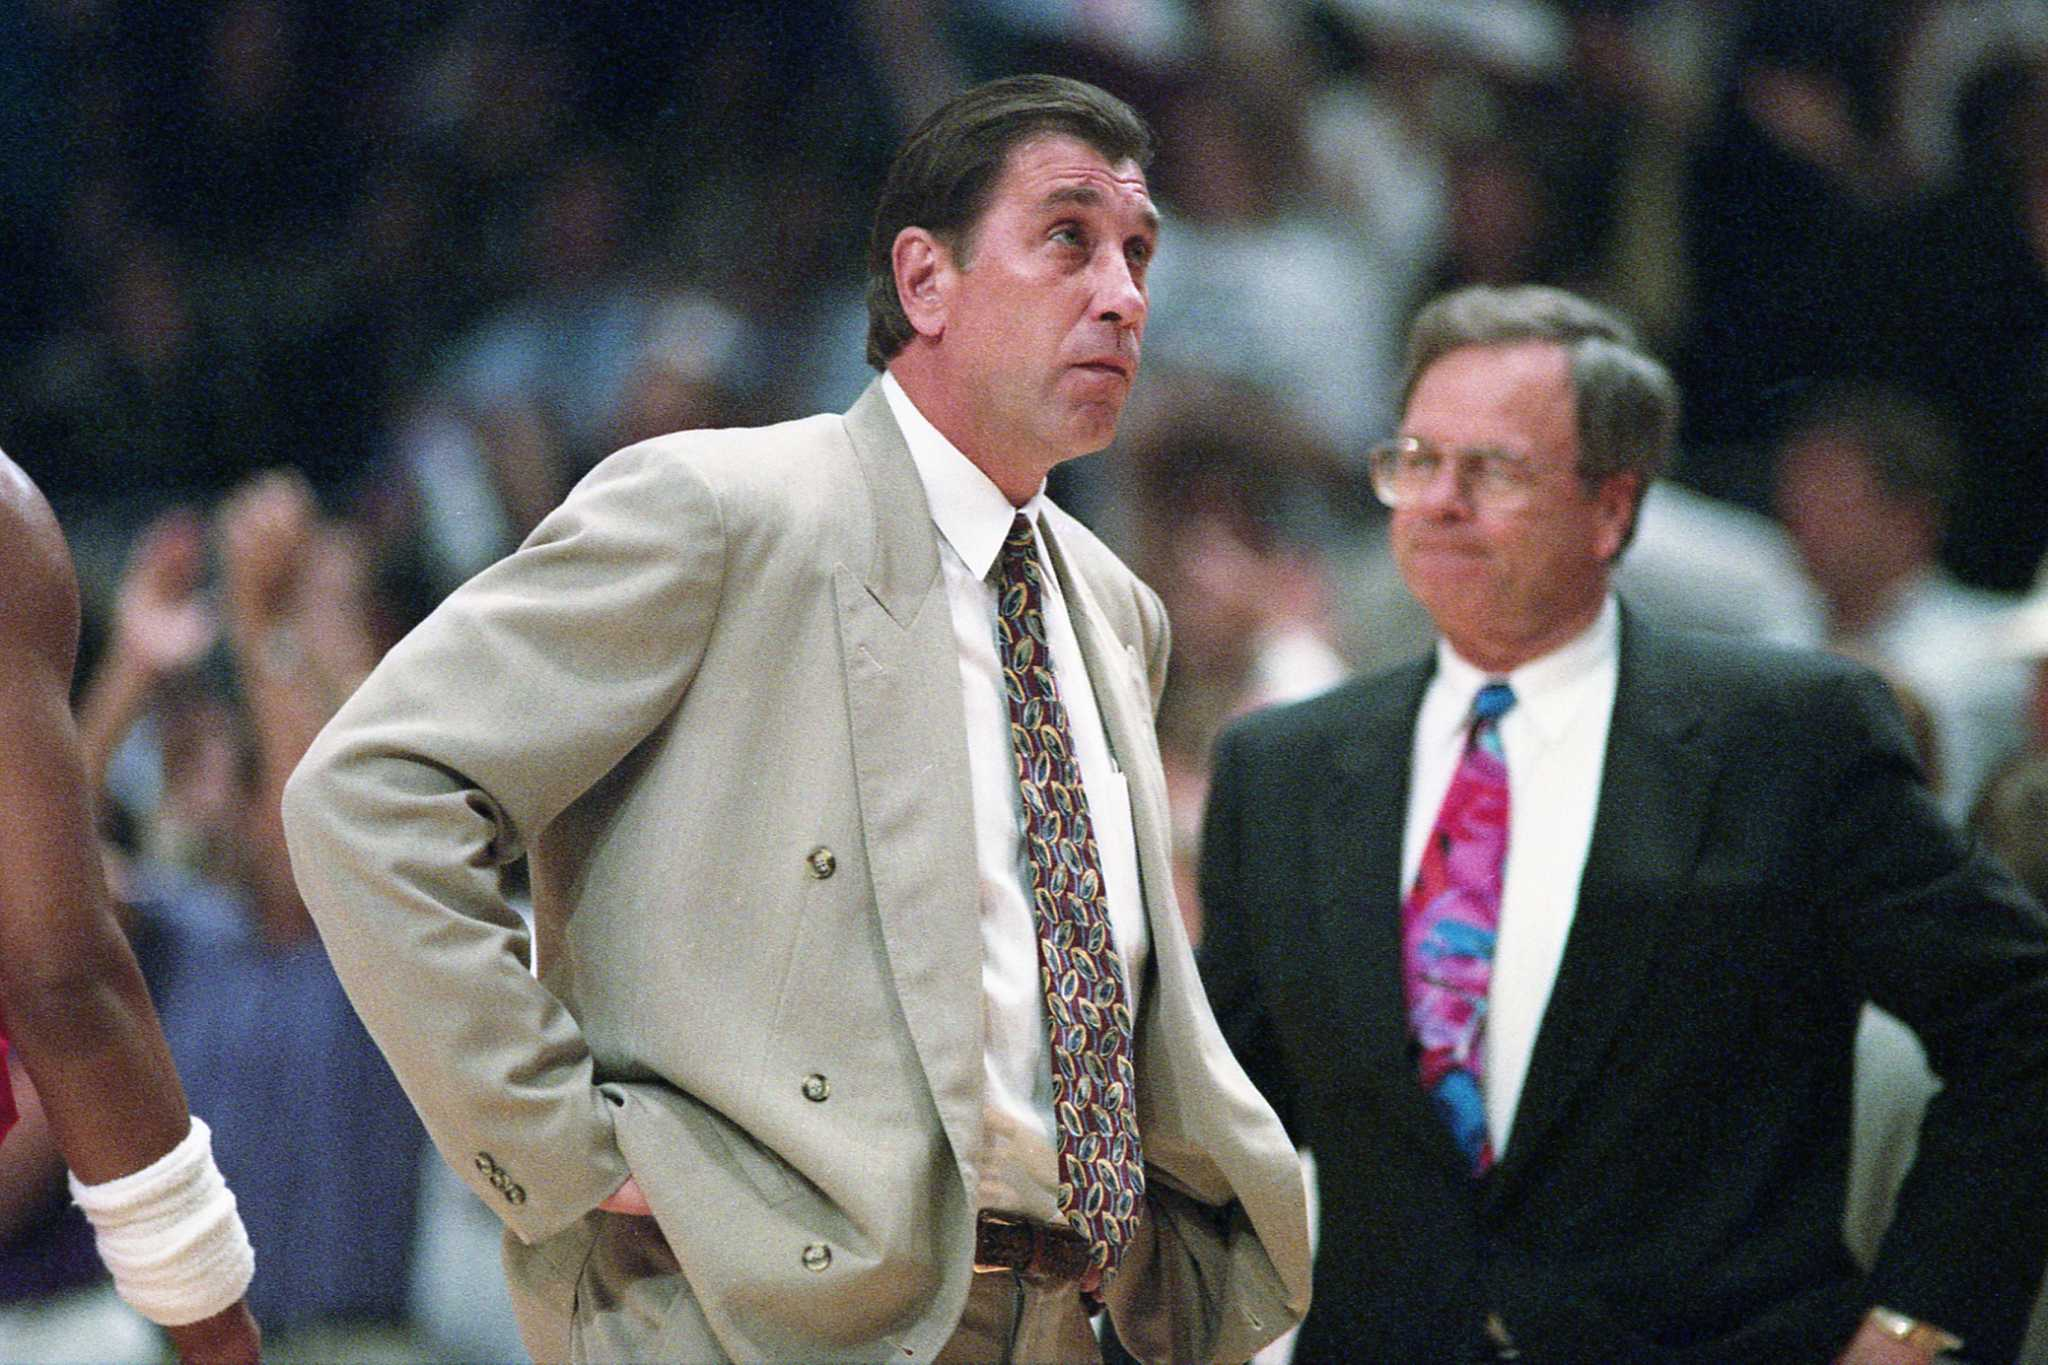 Solomon: Hall of Fame gets it wrong on Rudy Tomjanovich